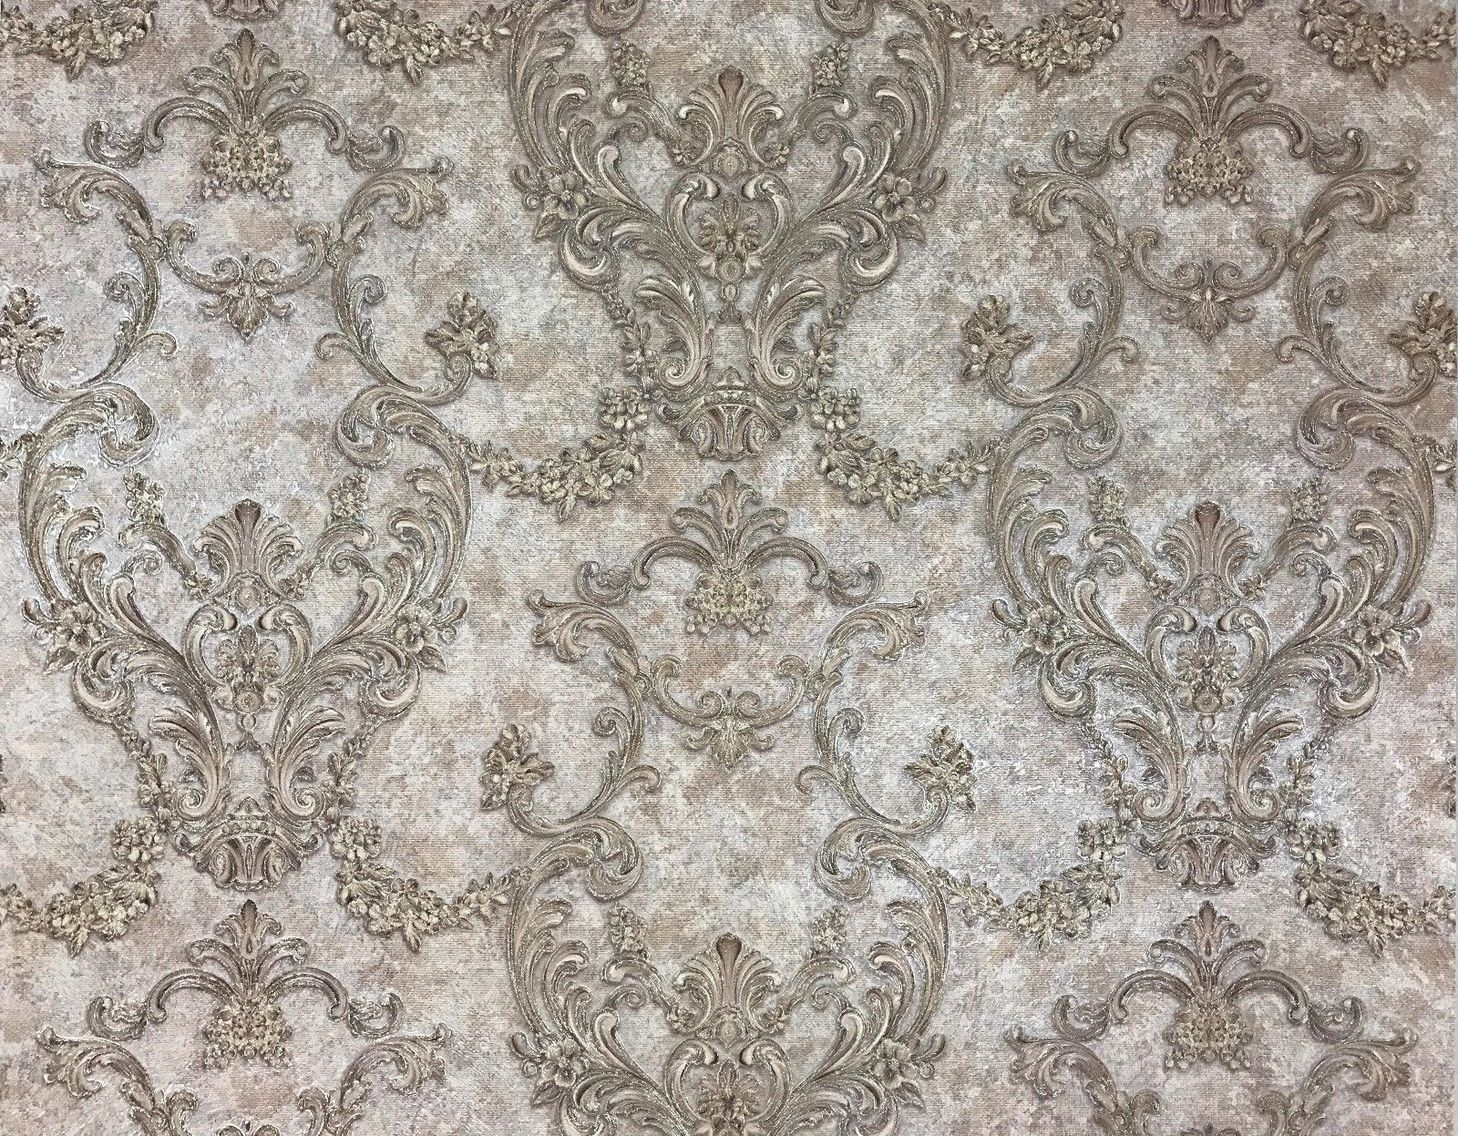 L89507 Victorian Gray Brown taupe Textured Wallpaper in